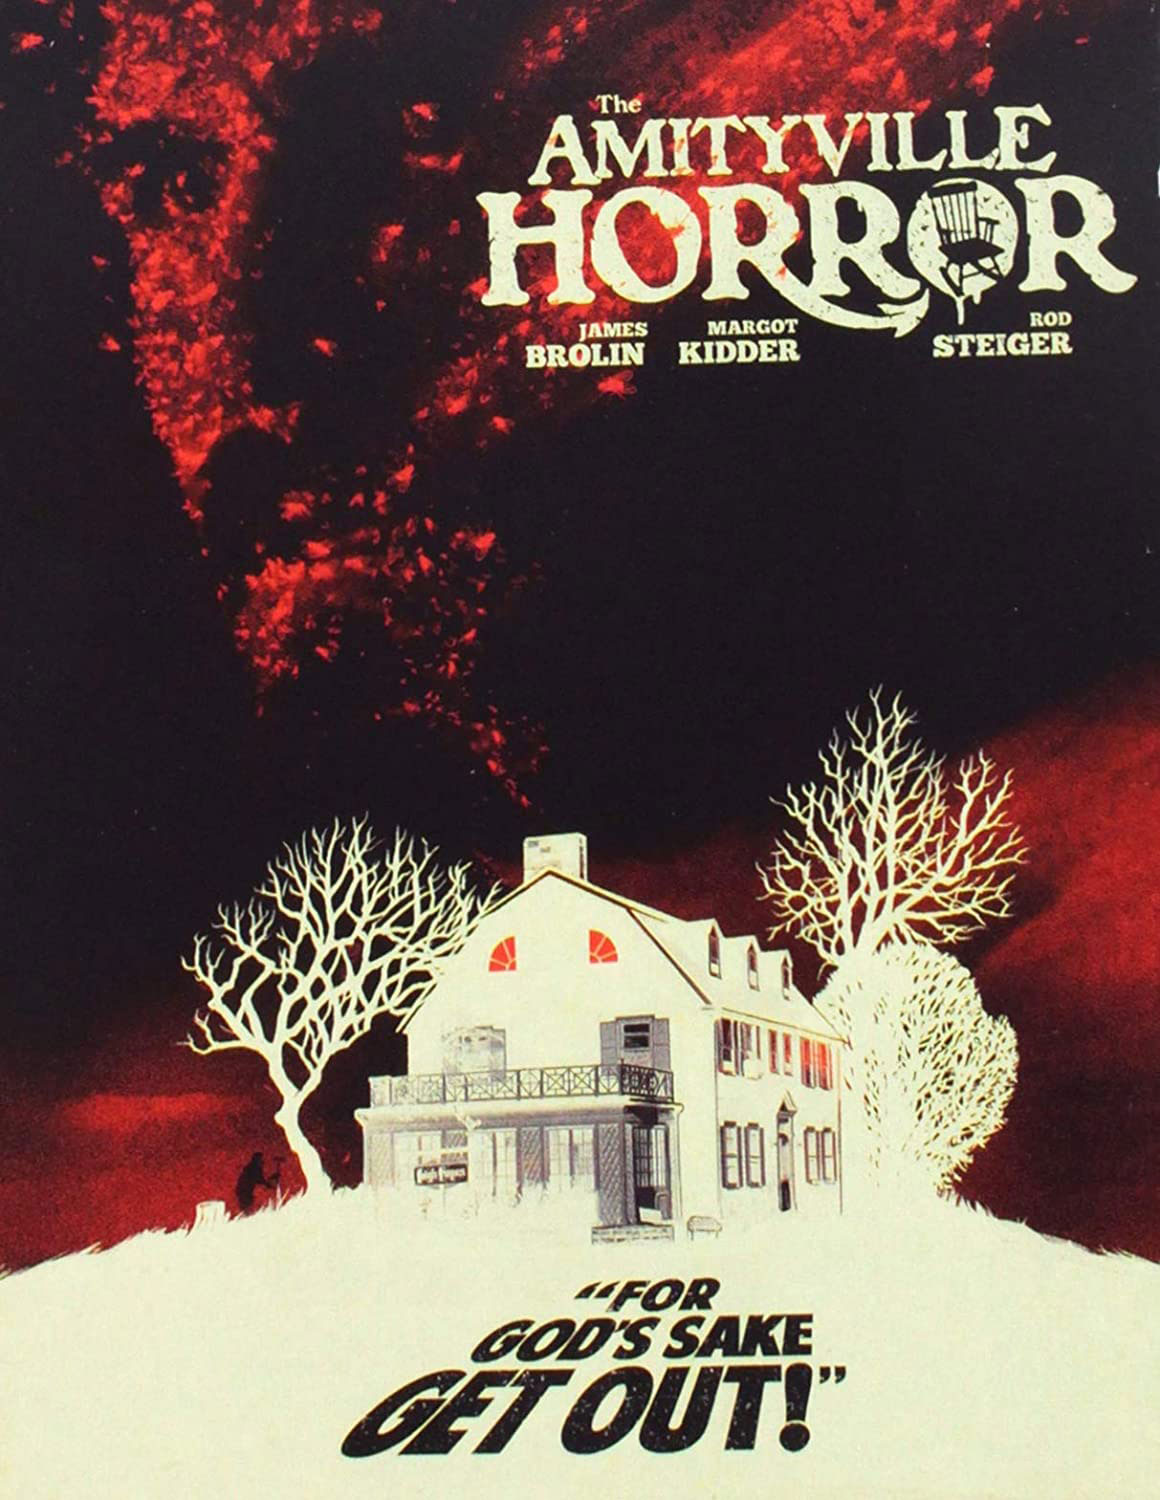 The Amityville Horror 1979 poster